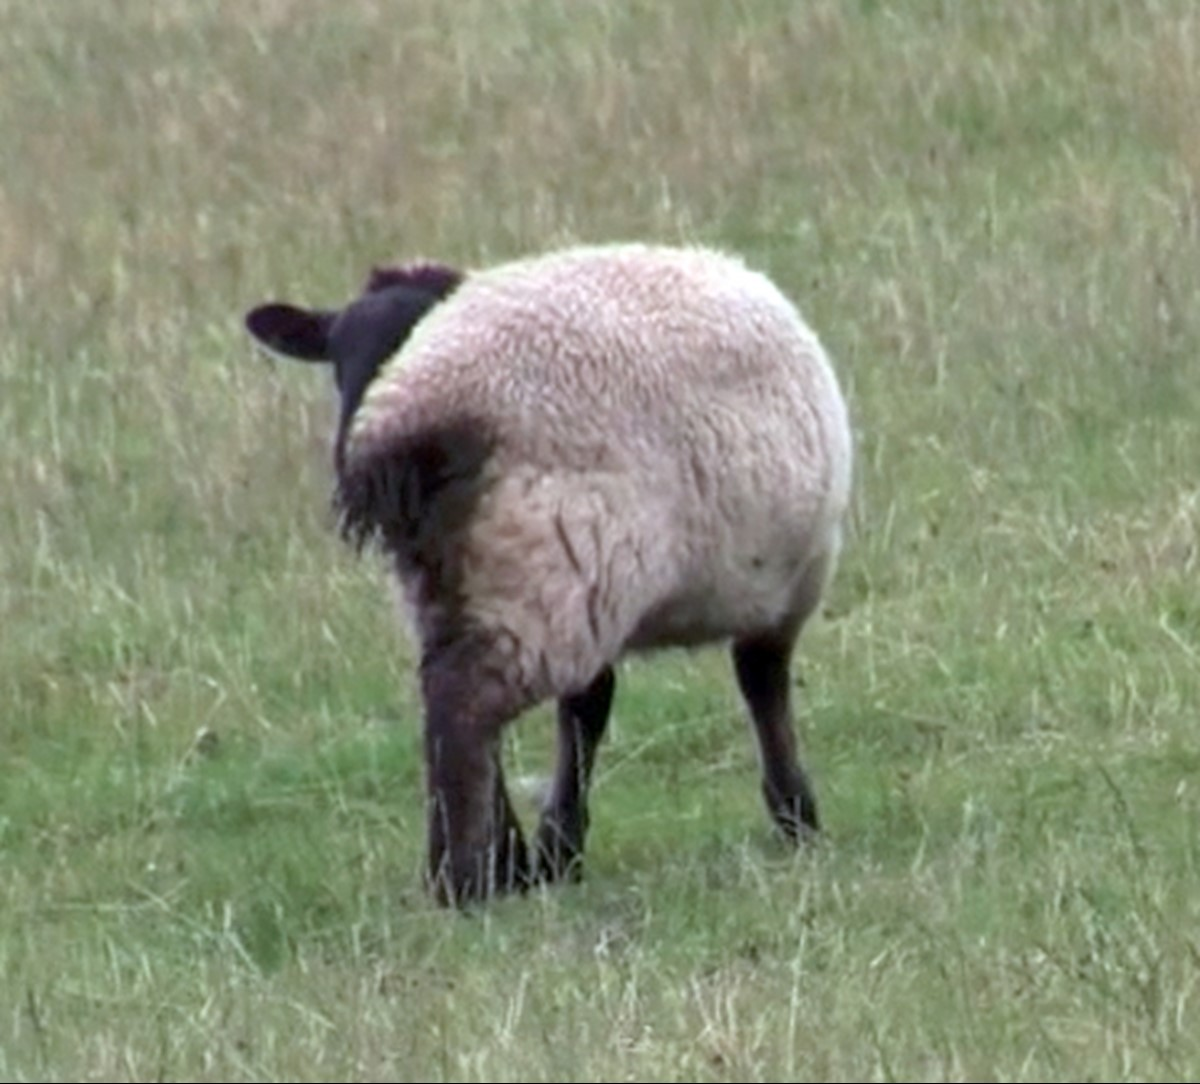 Disrupted grazing occurs when sheep are affected by blowfly strike, this in turn leads to weight loss/decreased weight gain